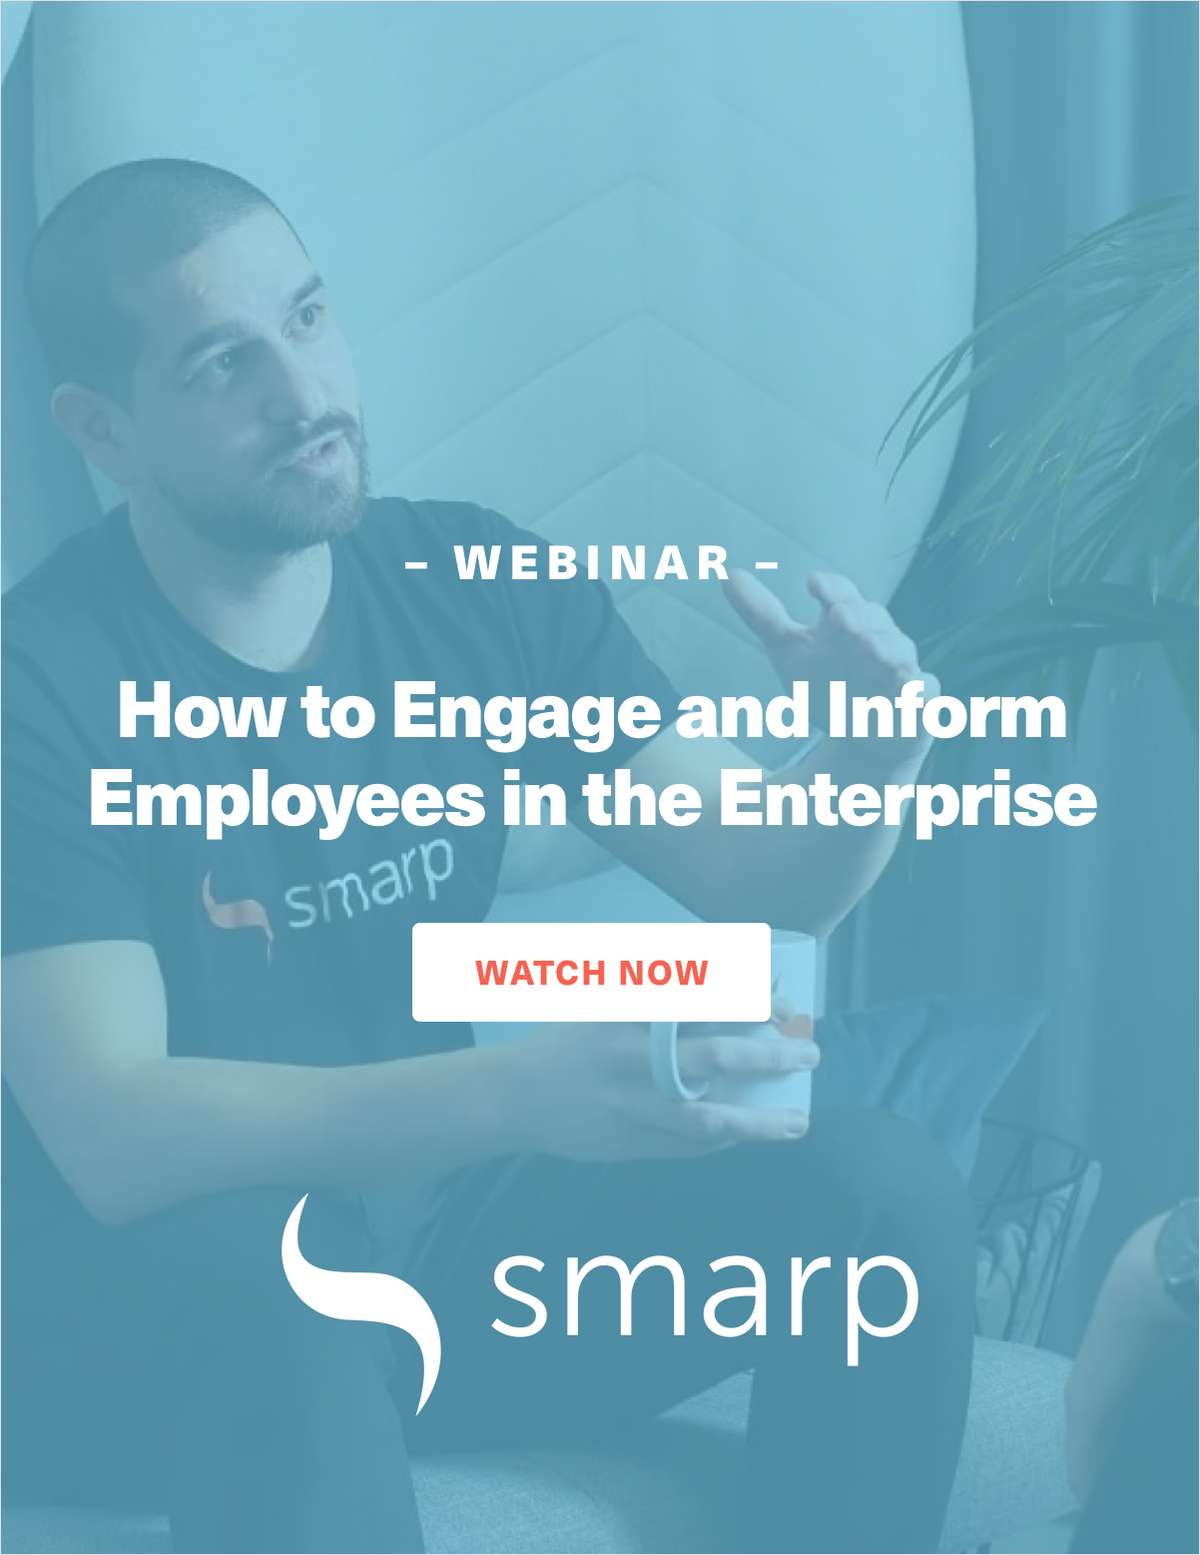 On-Demand Webinar: How to Engage and Inform Employees in the Enterprise